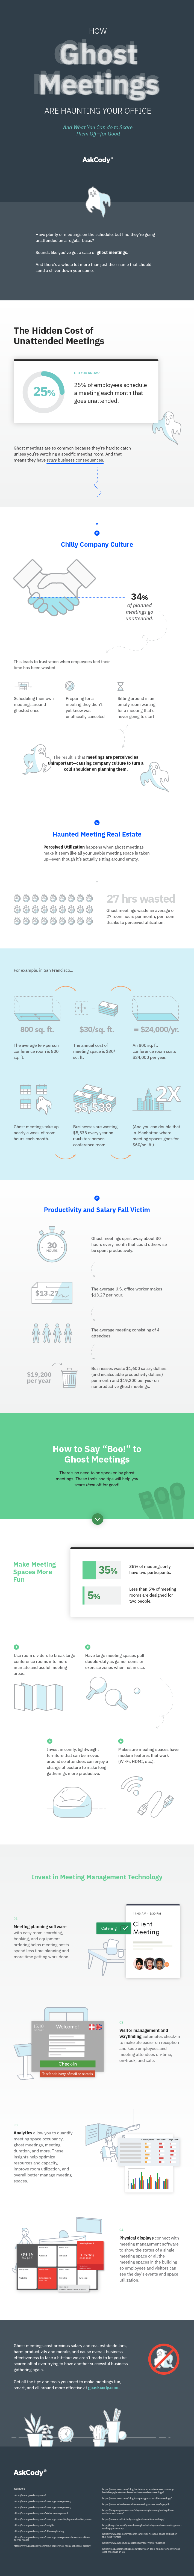 Ghost Meetings Are Haunting Your Office (And Your Financials) [INFOGRAPHIC]